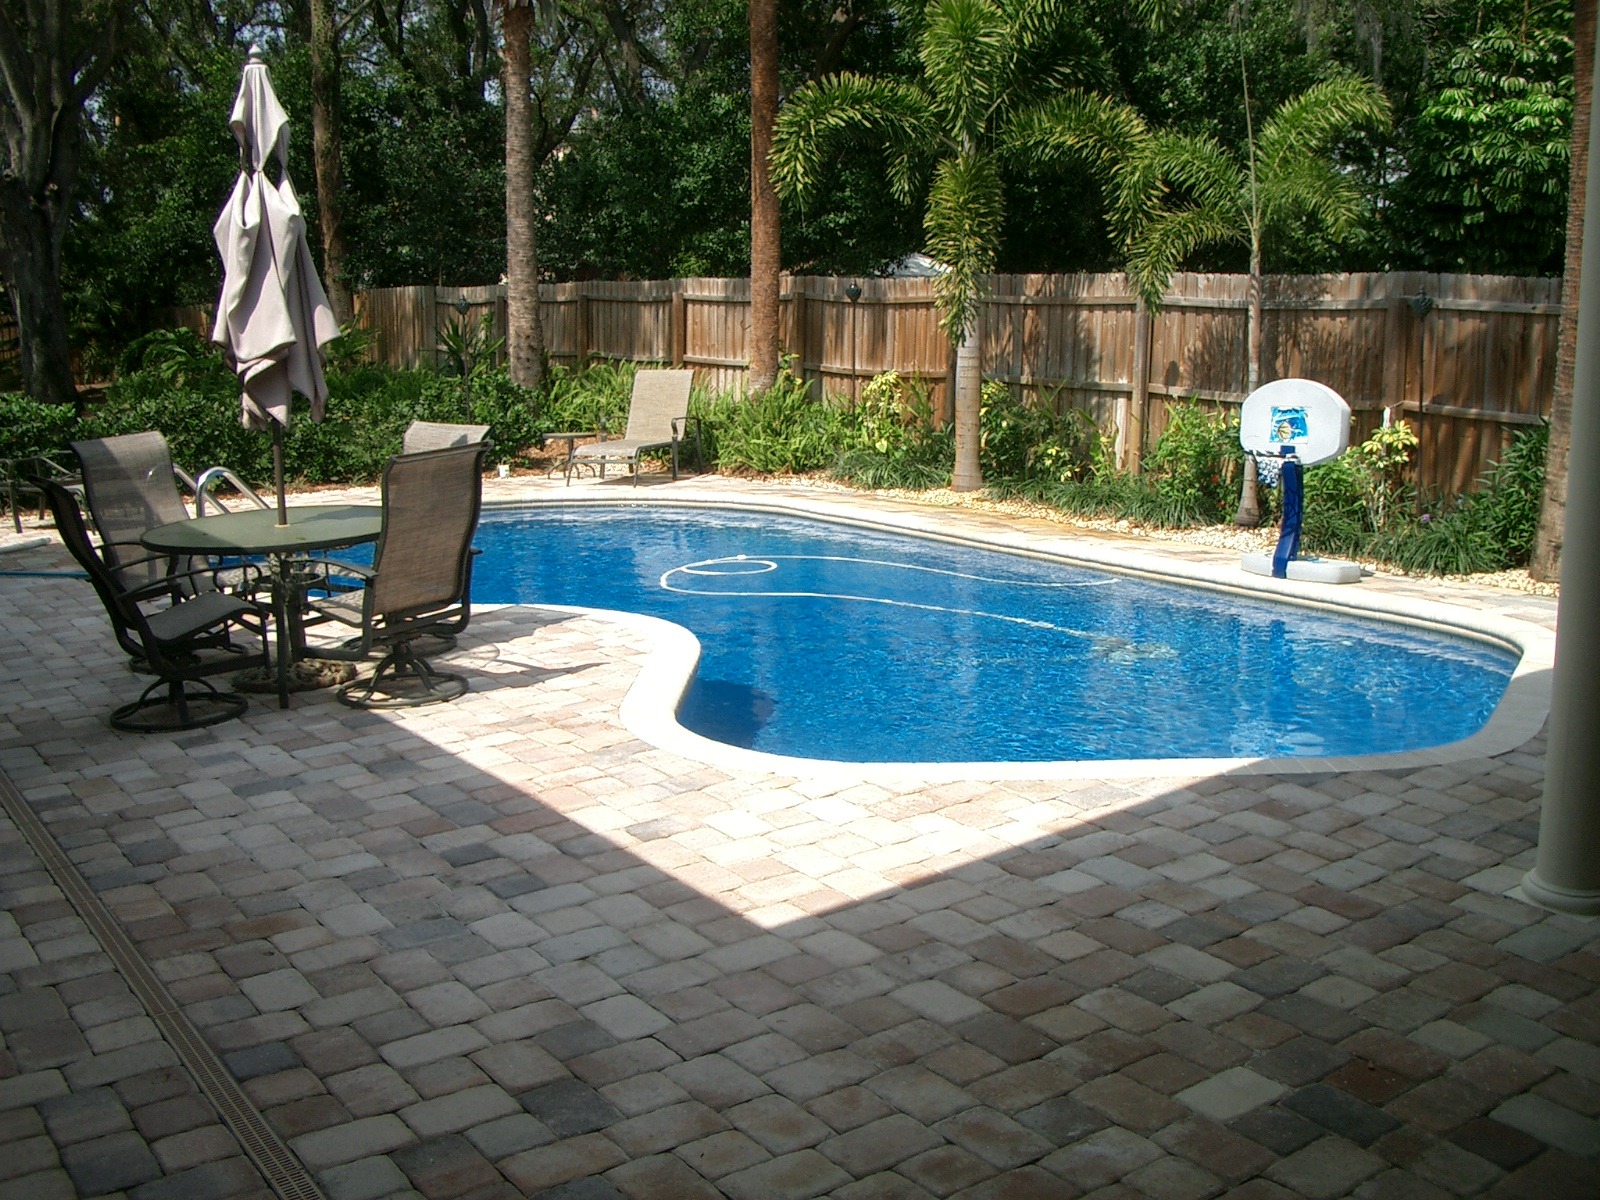 Backyard pool ideas pictures Photo - 1